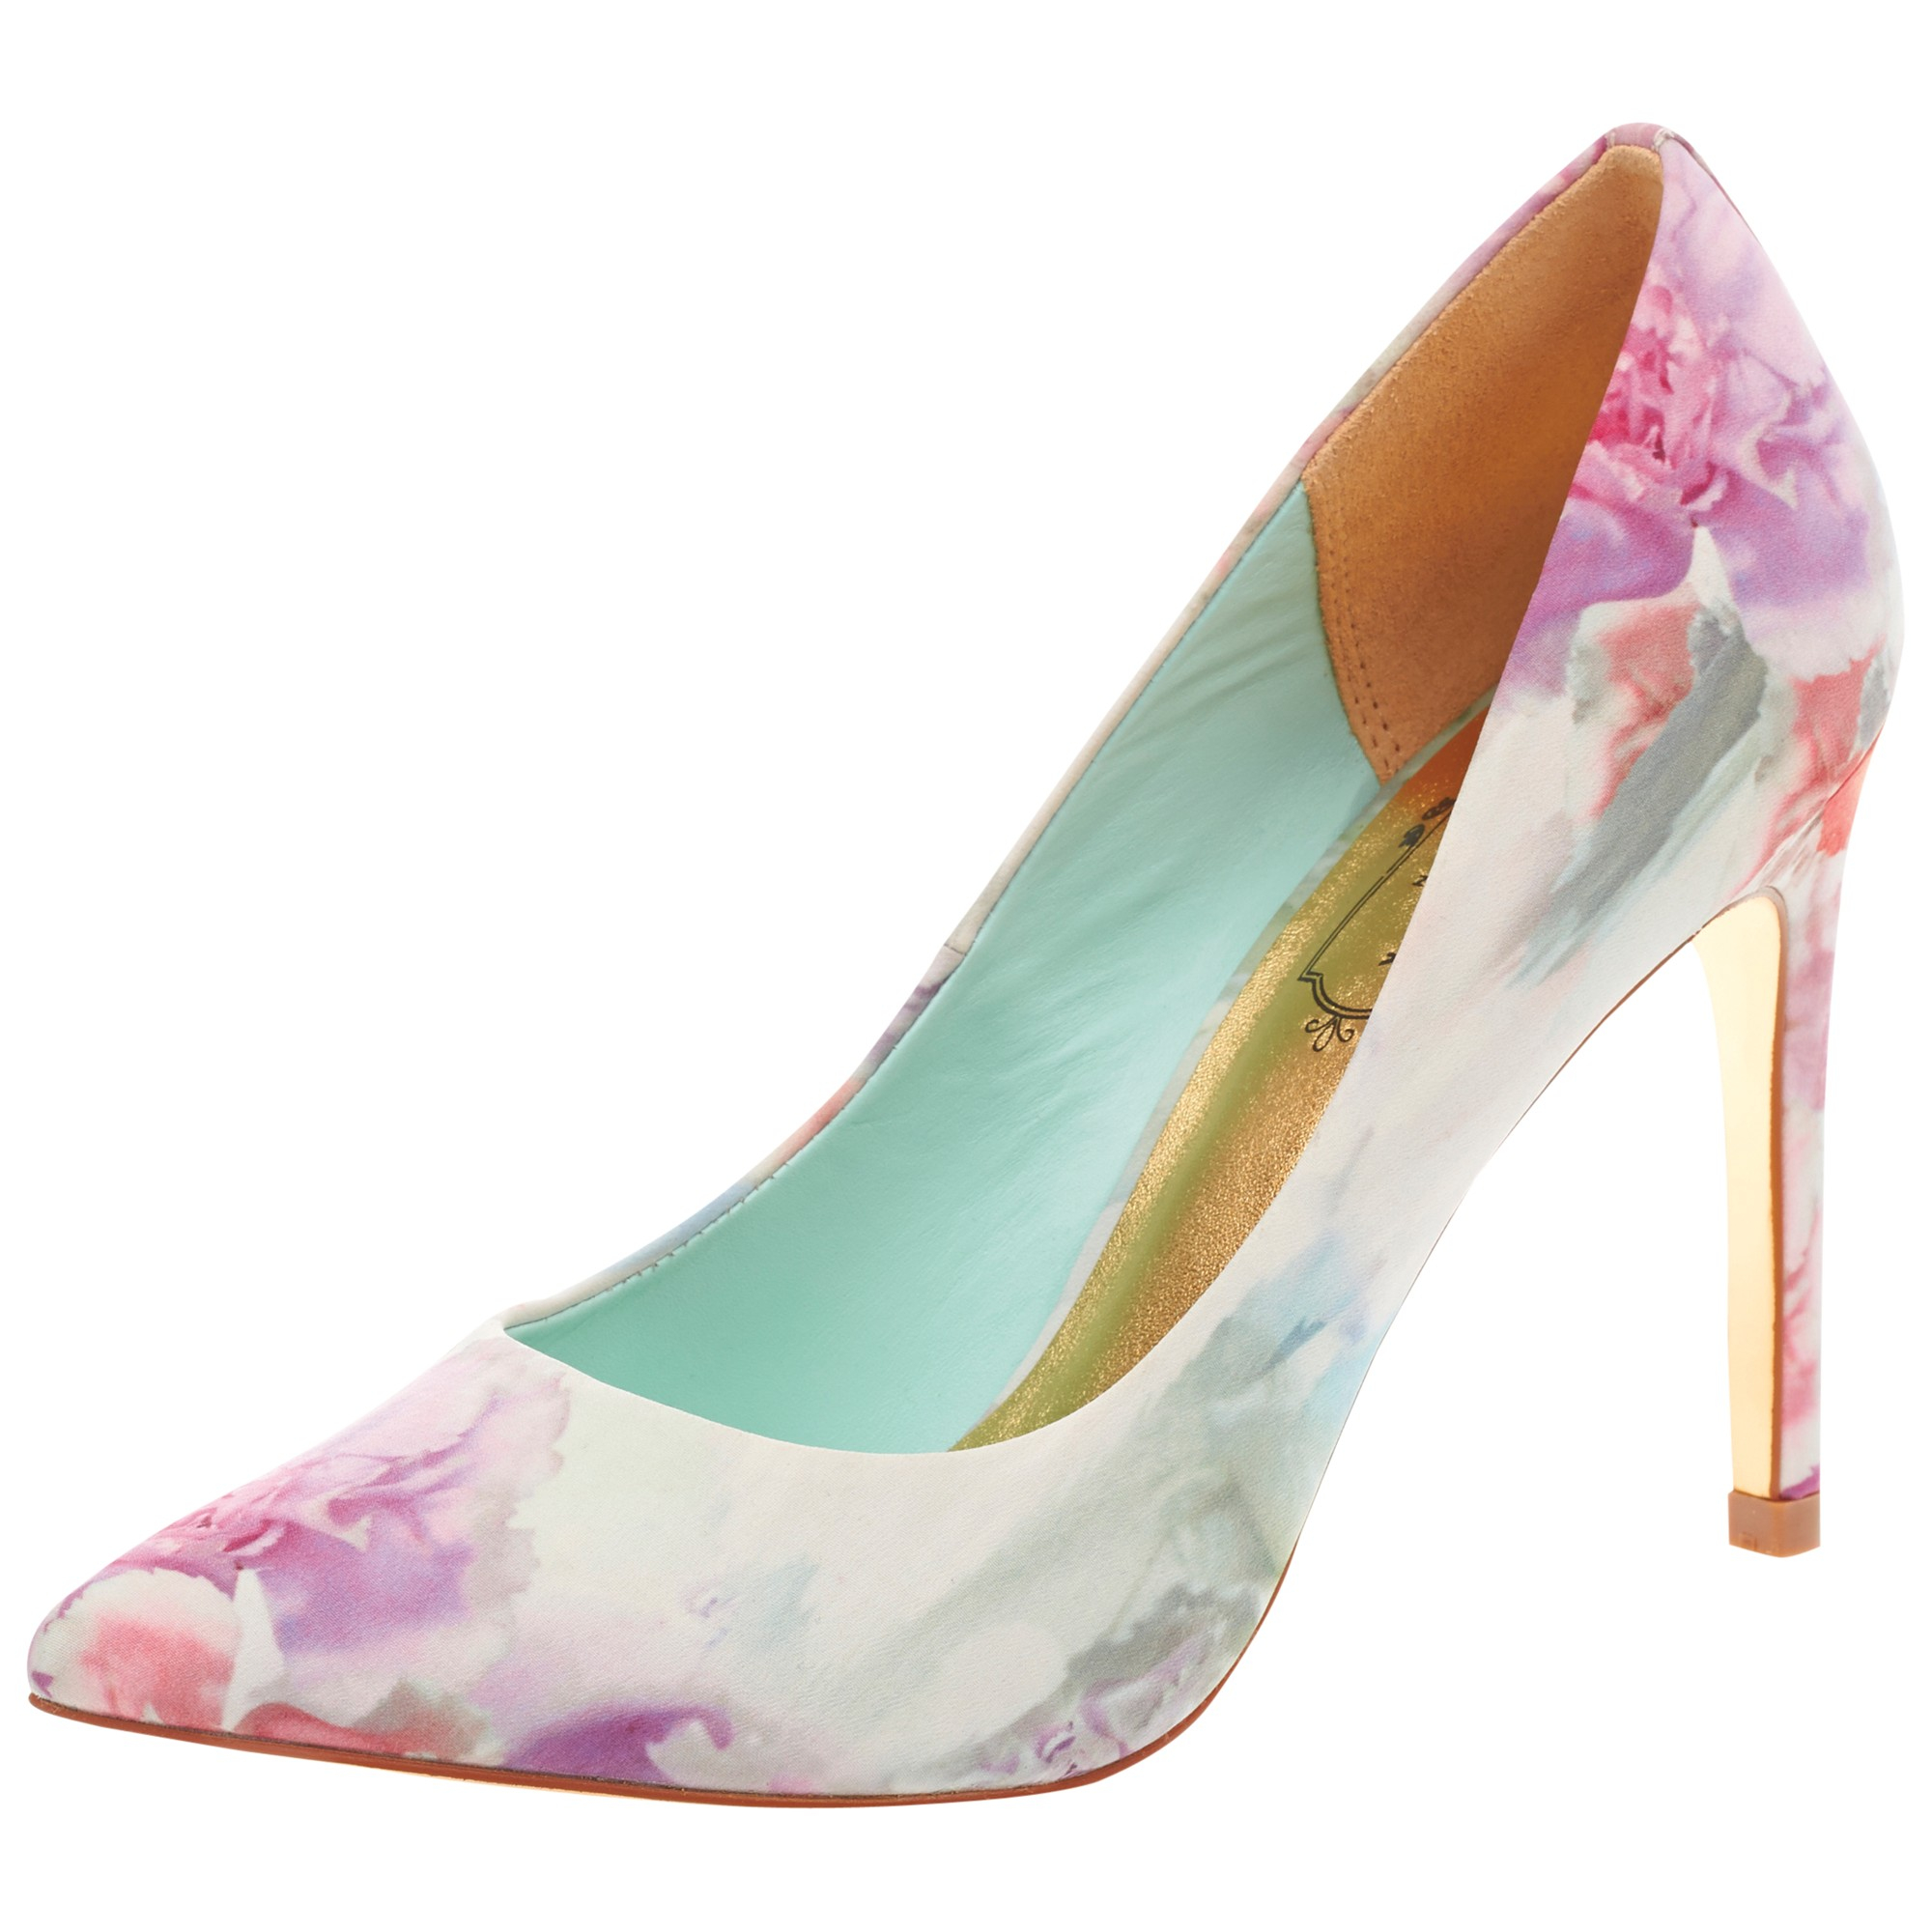 35f00e7593f8 Ted Baker Luceey Floral Print Court Shoes in Pink - Lyst